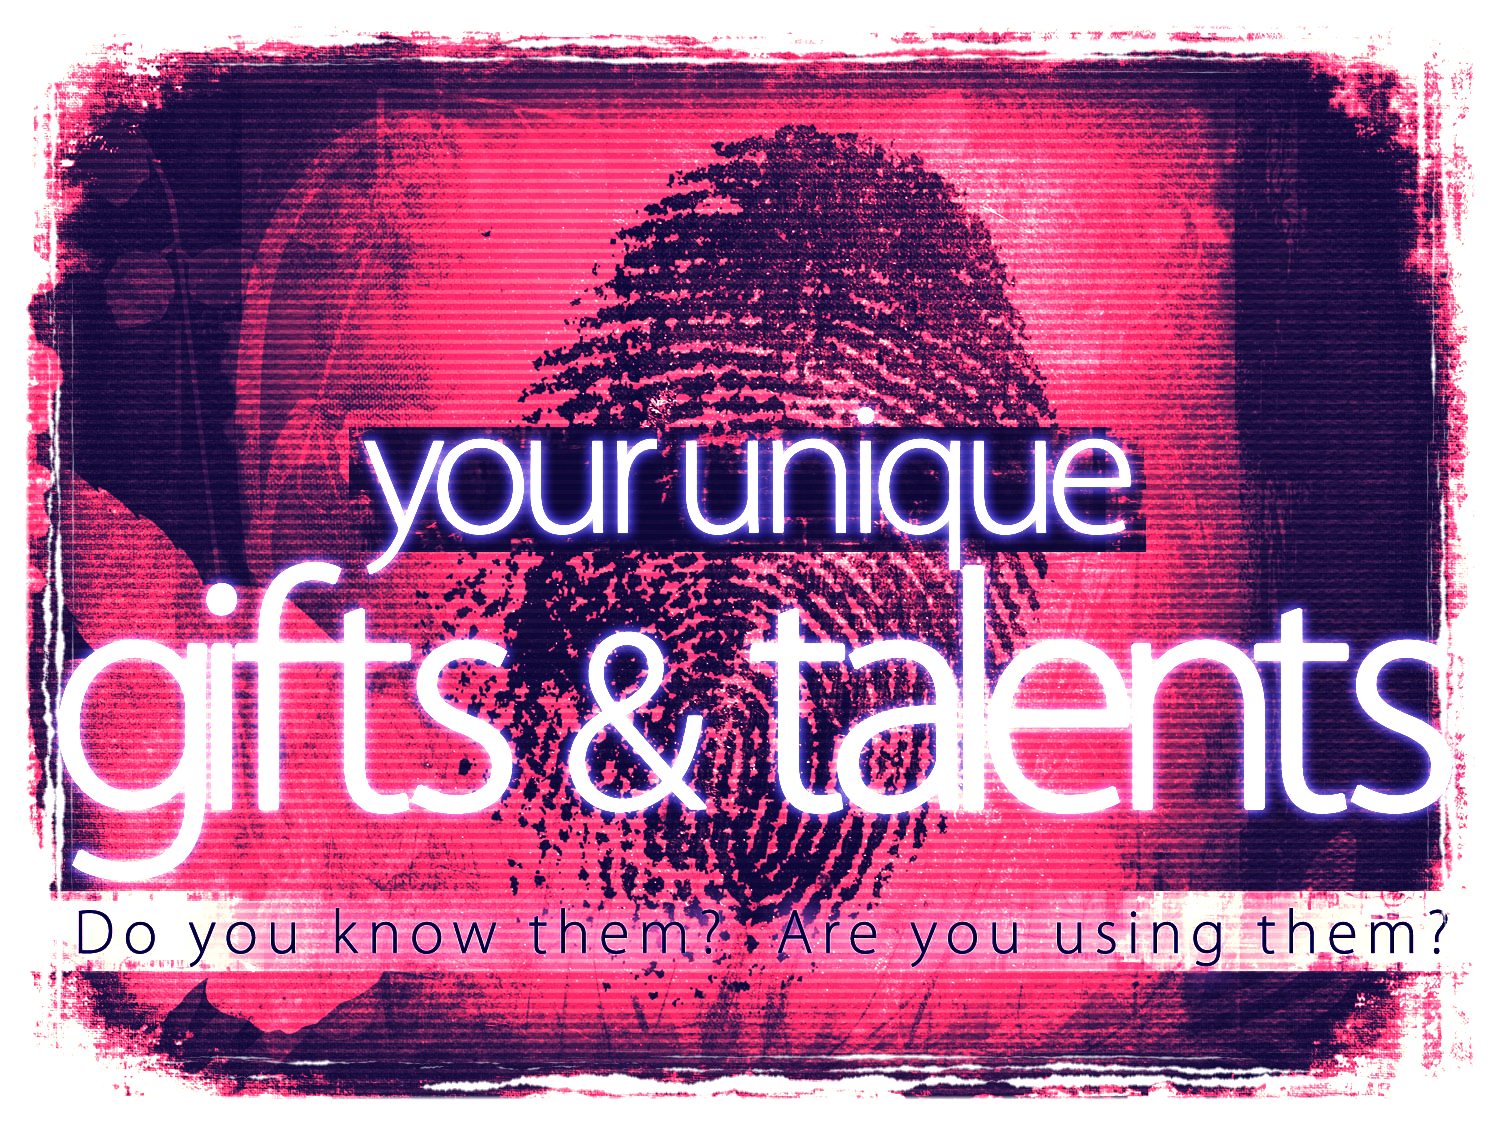 Do you know what your unique gifts and talents are as a singer? Are you using them?